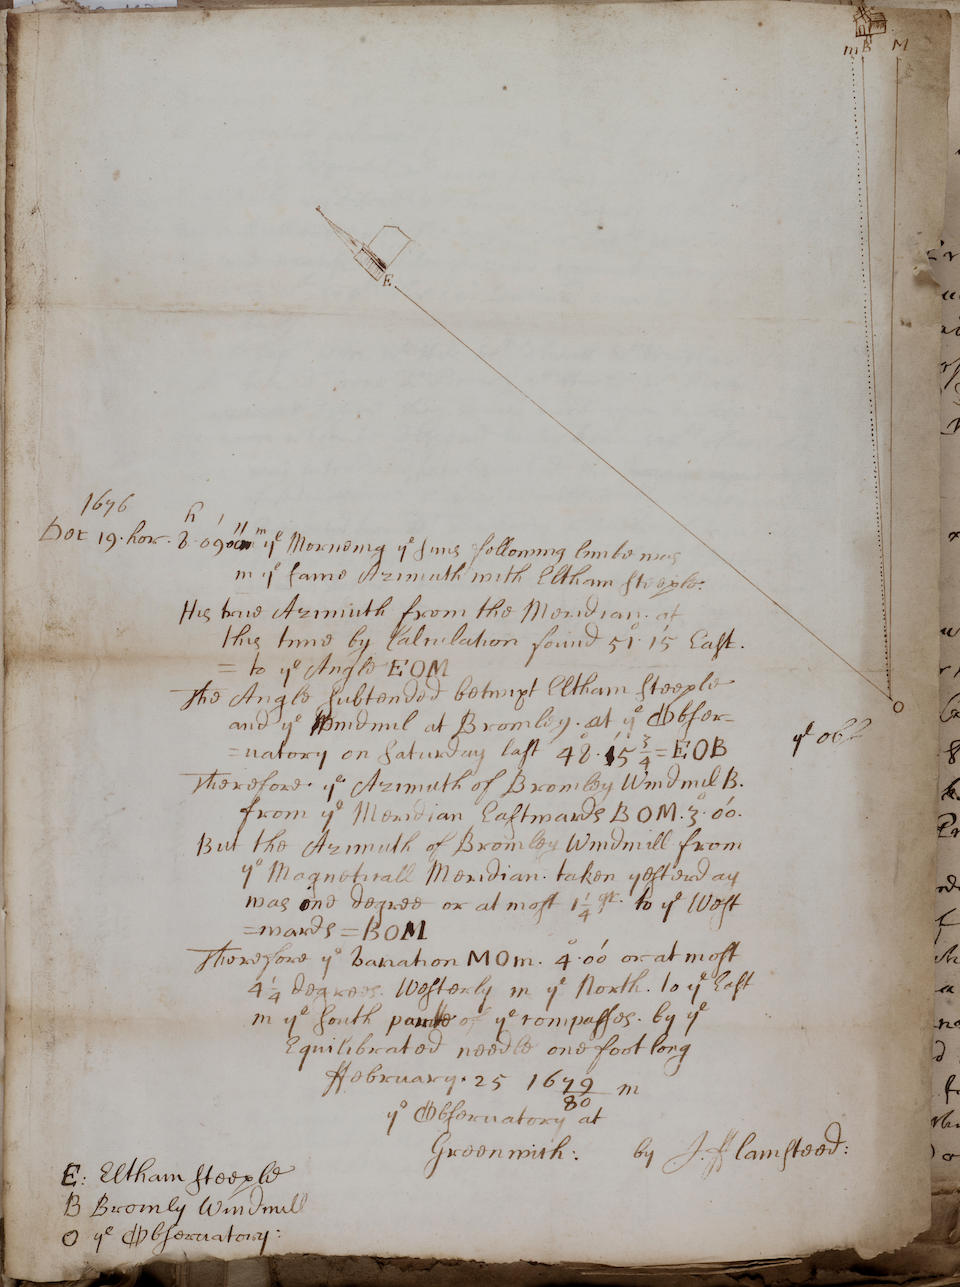 Folder of manuscripts - notes relating to lectures at the Royal Society 1670's